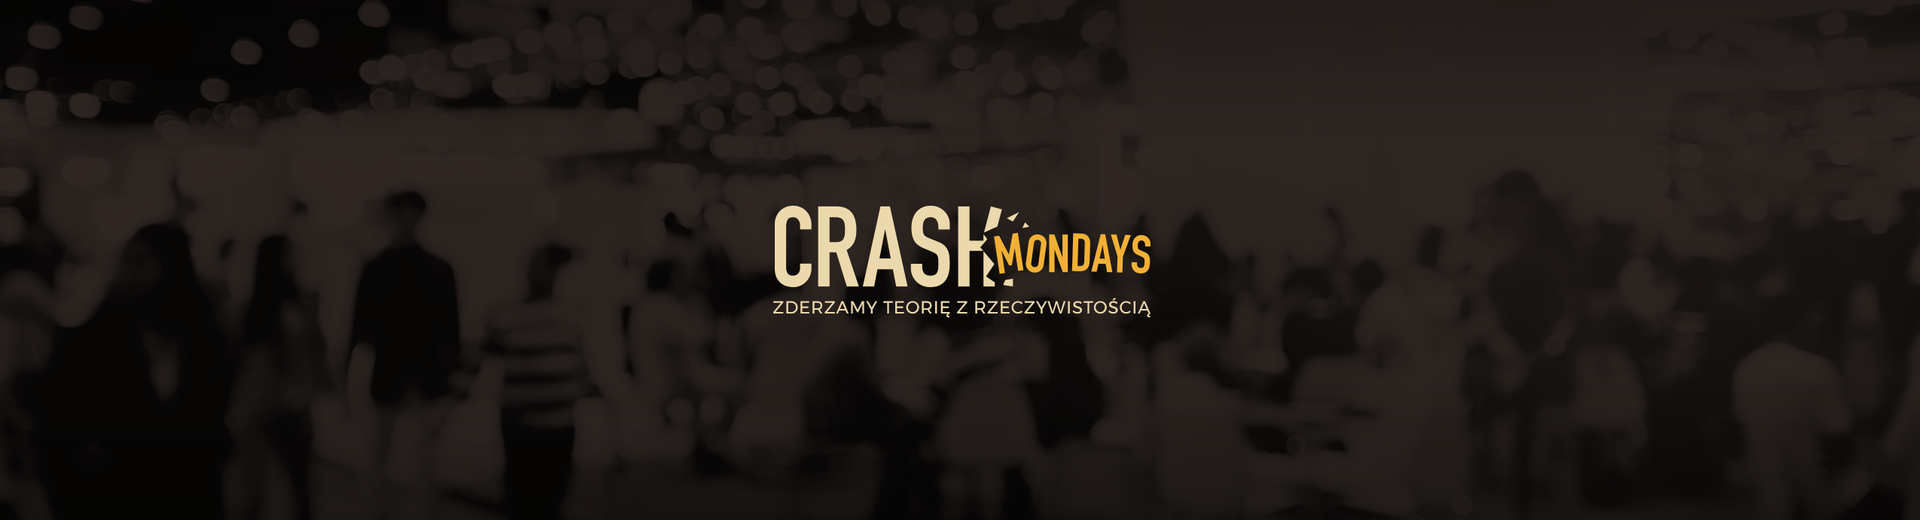 CRASH Mondays